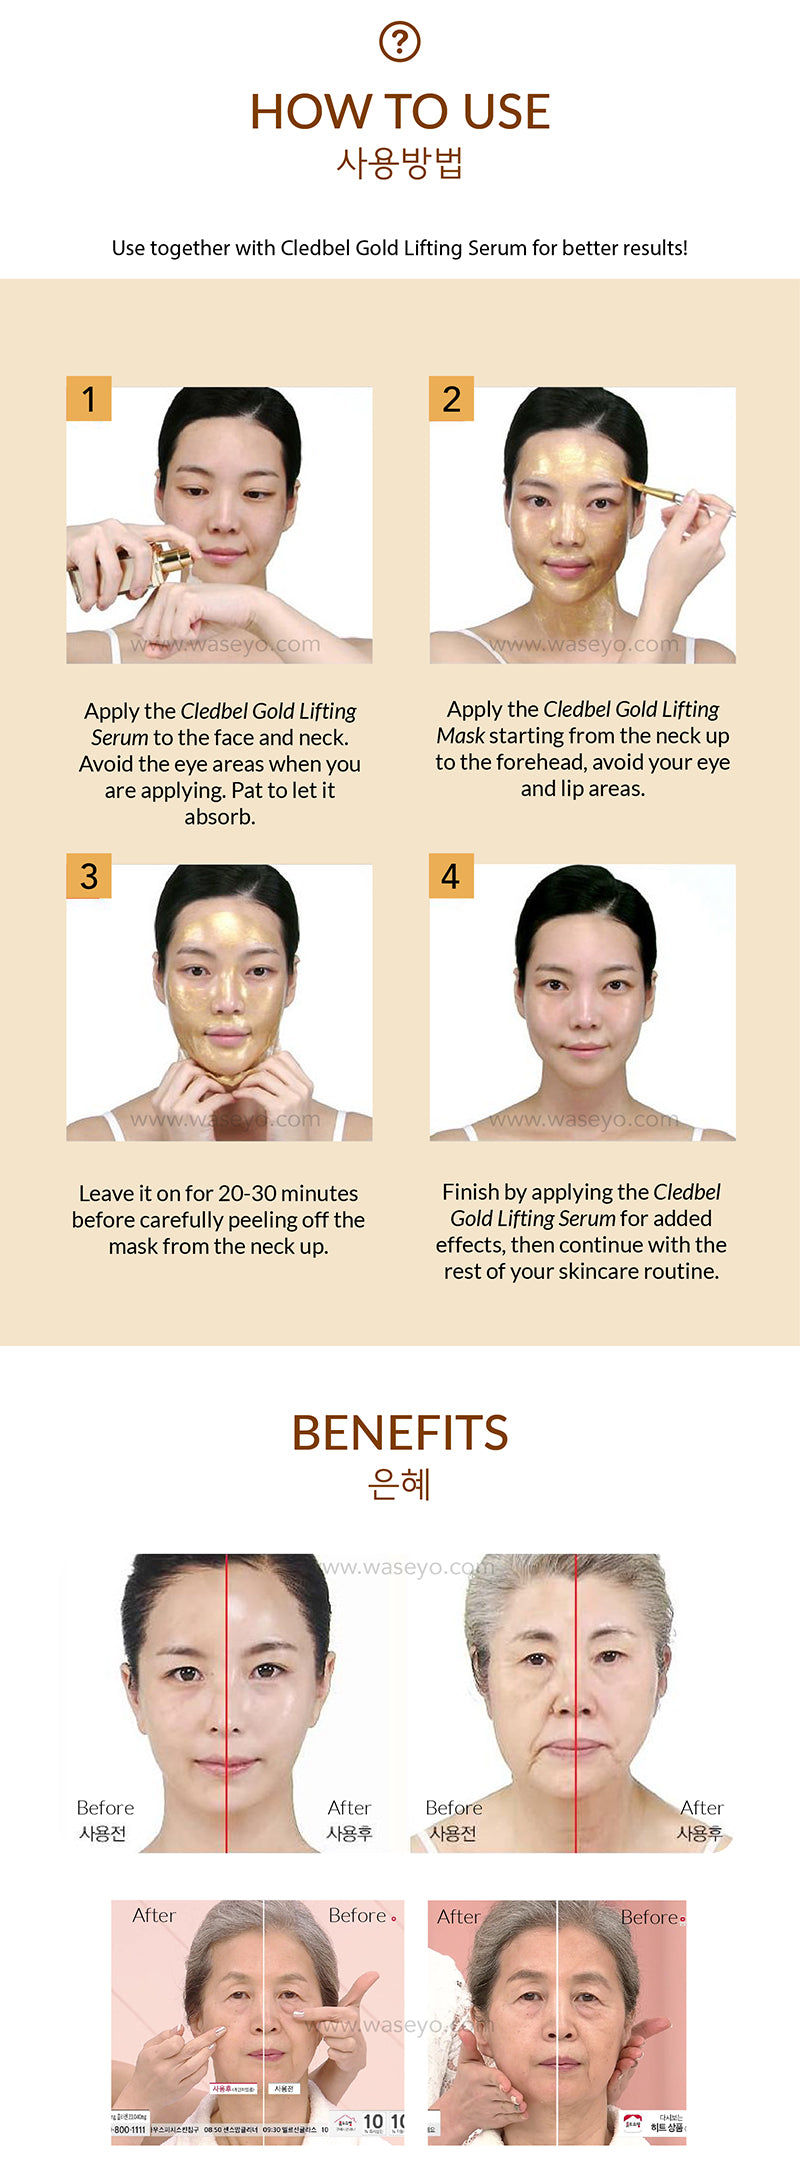 How to Use. Use together with Cledbel Gold Lifting Serum for better results. Step 1 to apply Serum to face and neck area. Step 2 apply lifting mask from the neck up to forehead and avoid eye area. Step 3 leave on for 20 minutes before peel off mask. Step 4 apply serum for better absorption and better lifting effect.